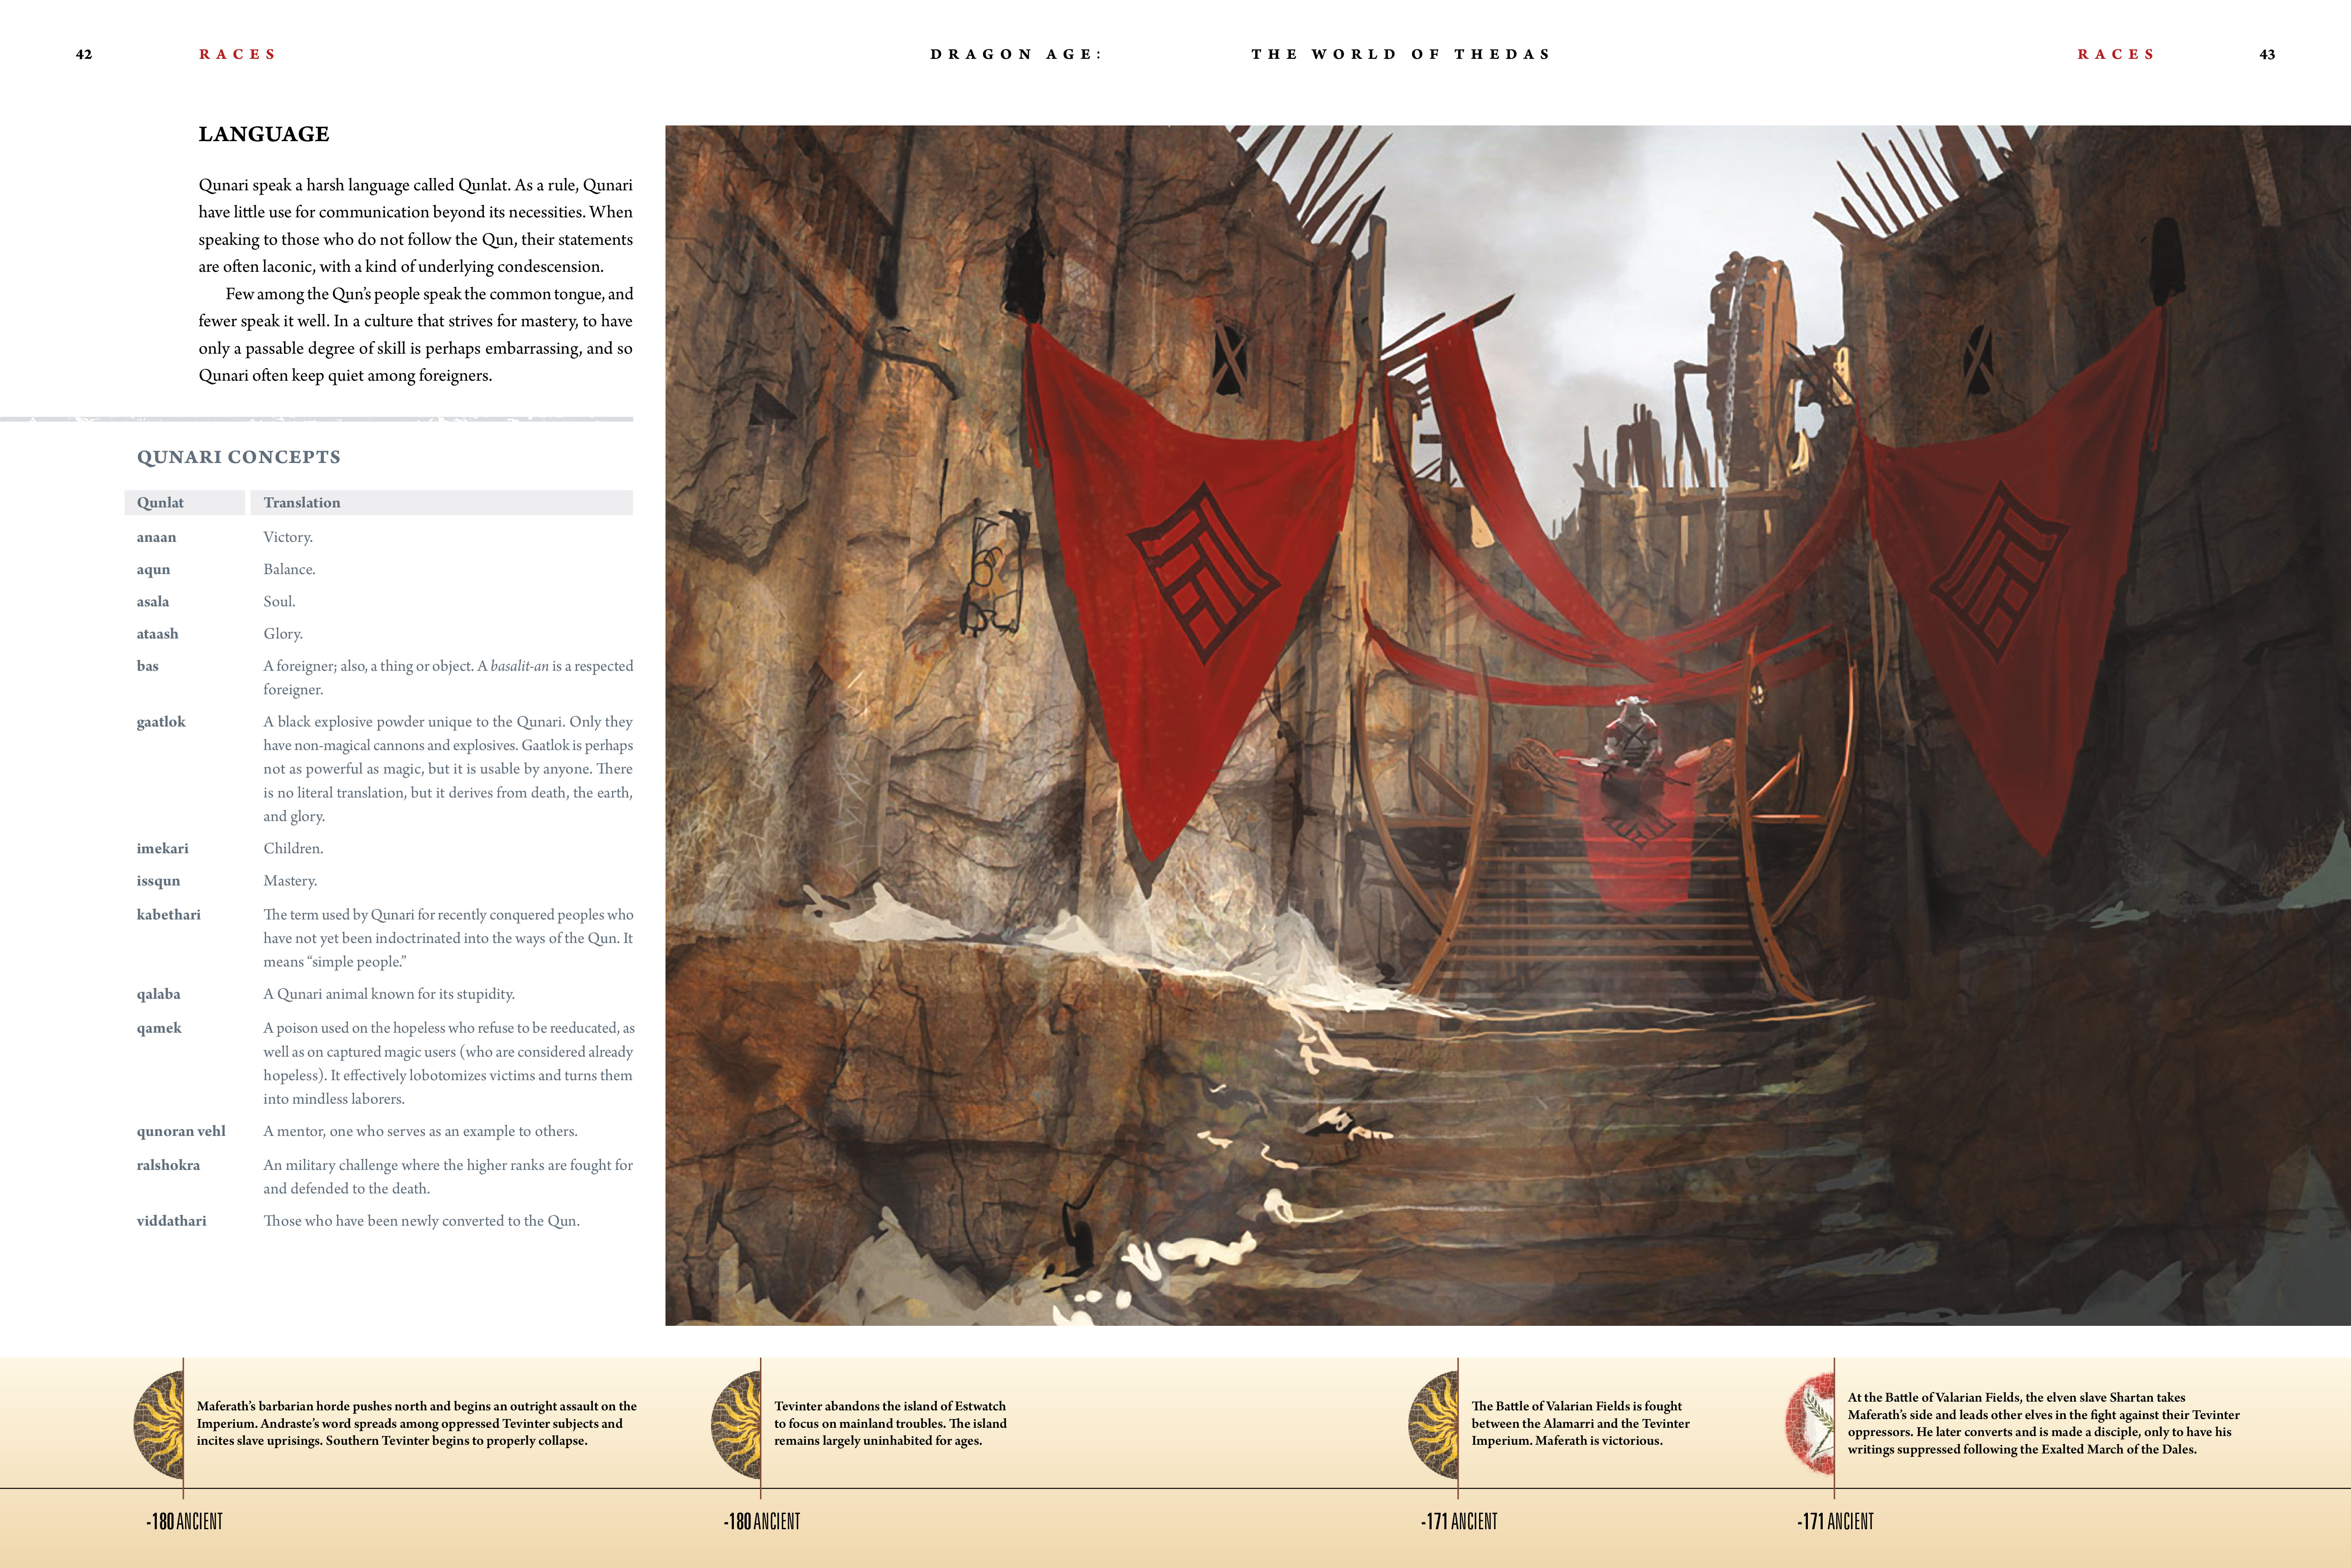 Read online Dragon Age: The World of Thedas comic -  Issue # TPB 1 - 34